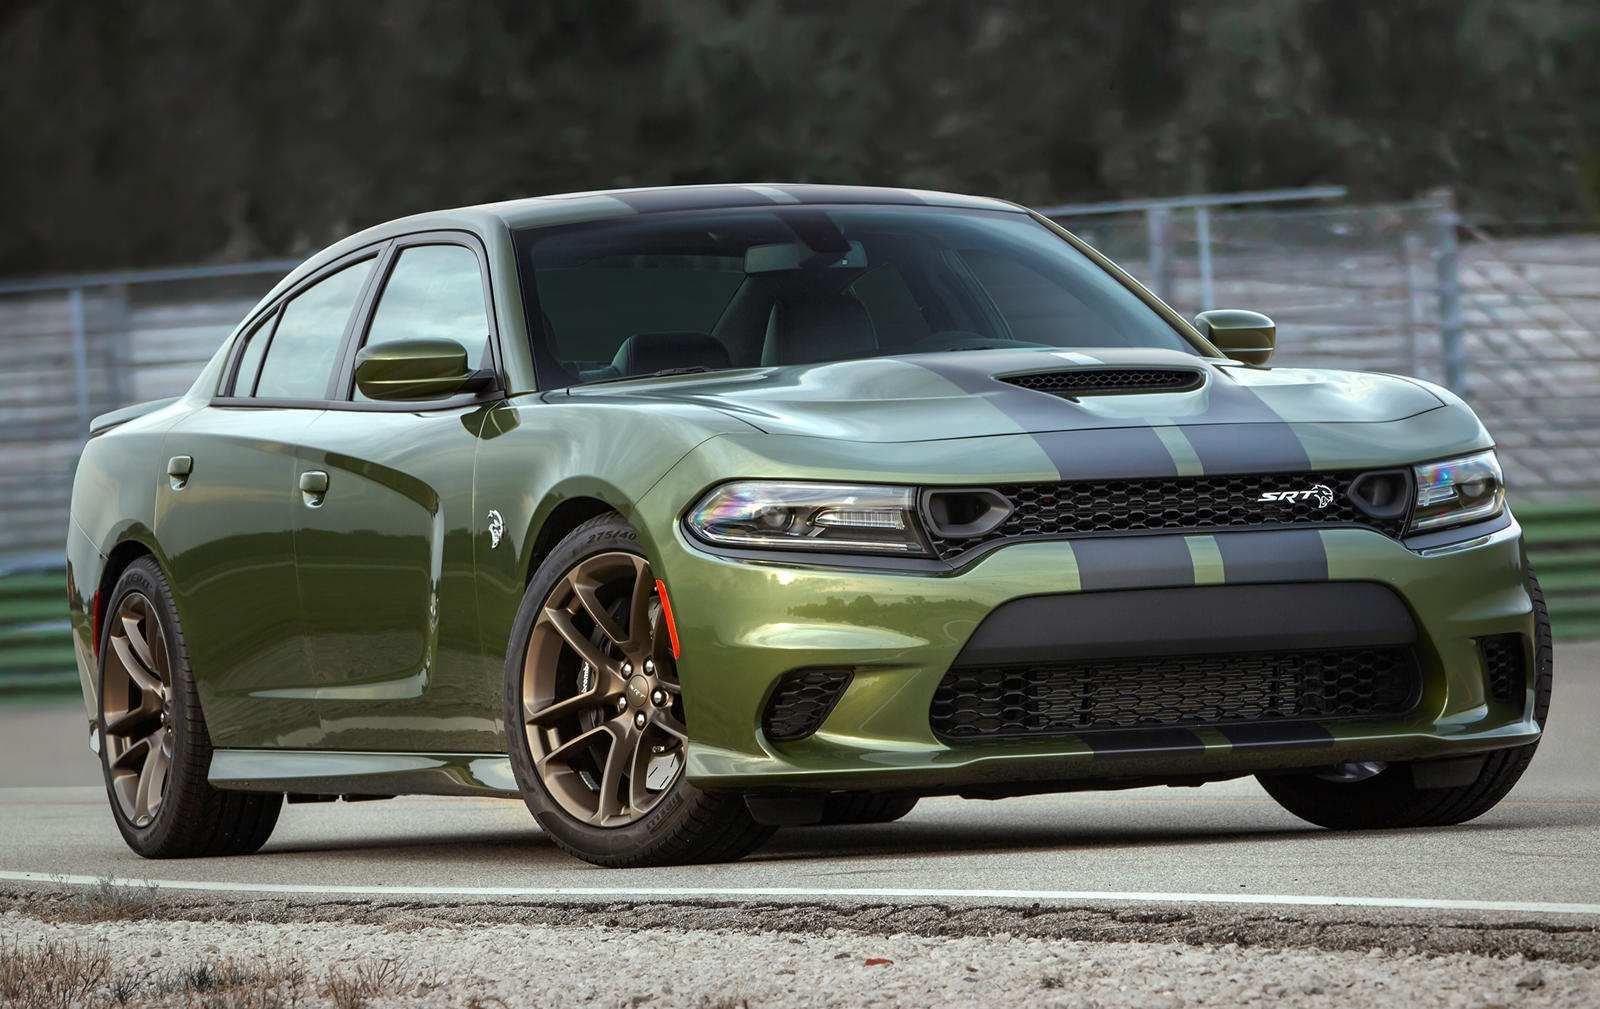 94 All New 2020 Dodge Charger Srt8 Hellcat New Model And Performance